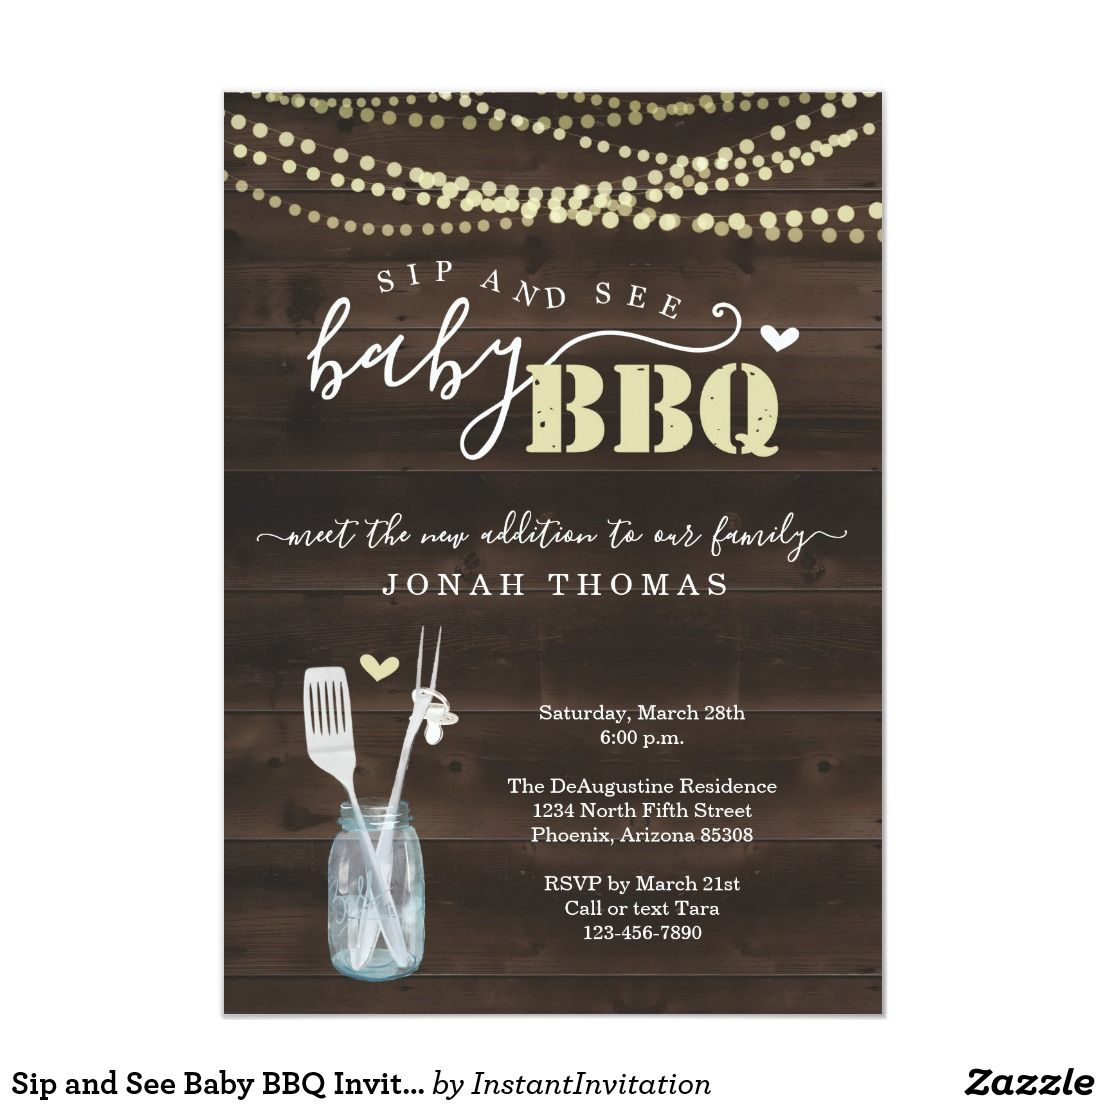 Sip and See Baby BBQ Invitation Baby Q Barbeque | Zazzle